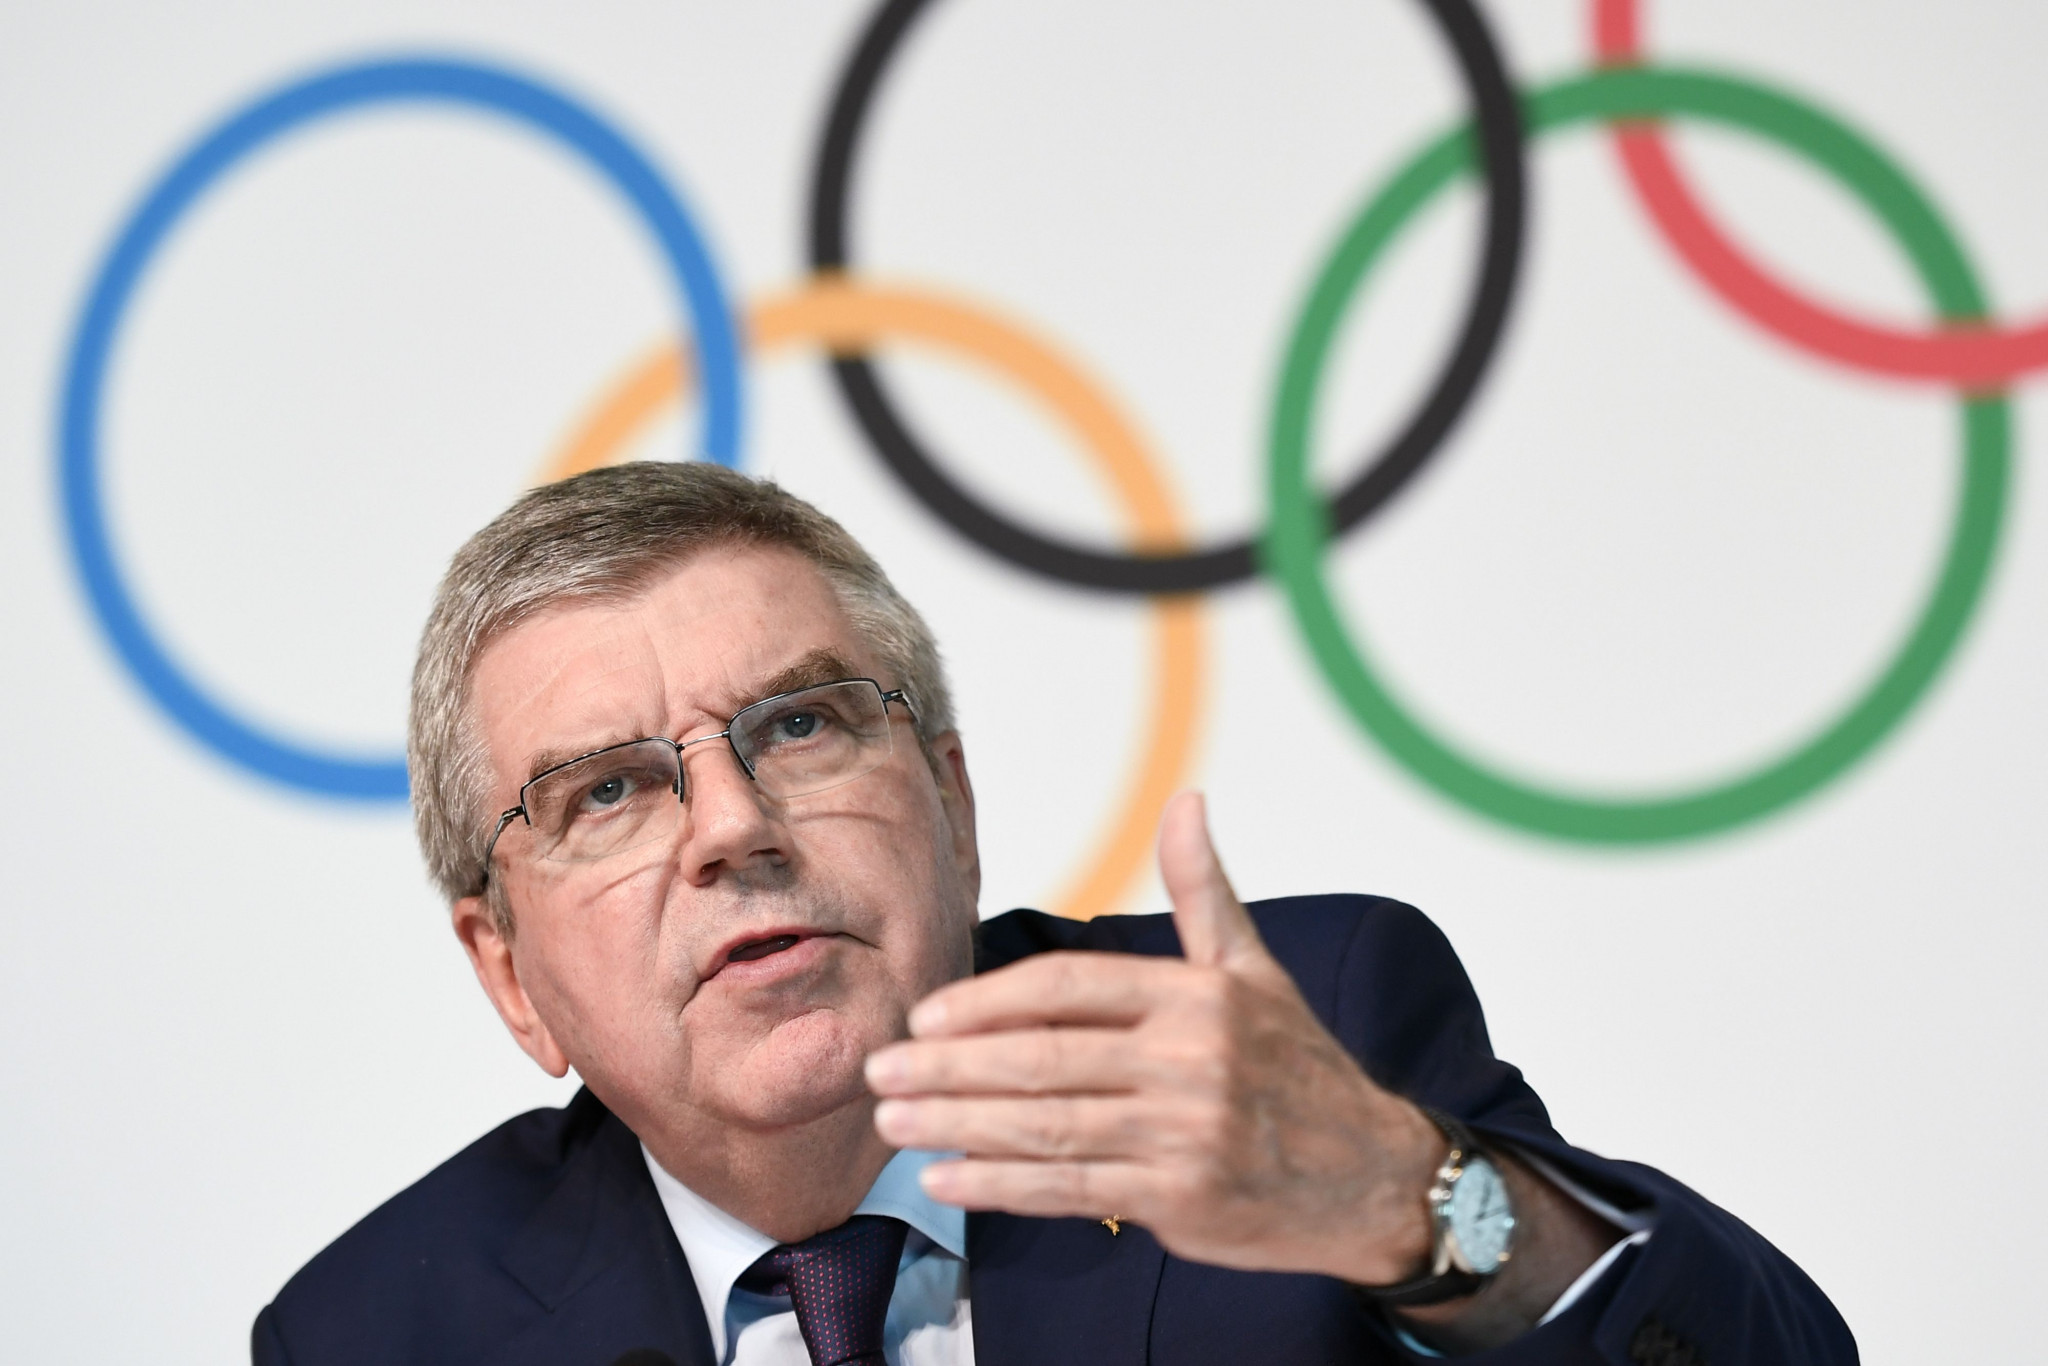 IOC President Thomas Bach in April recommended athletes begin discussions with their NOCs regarding Rule 40 ©Getty Images